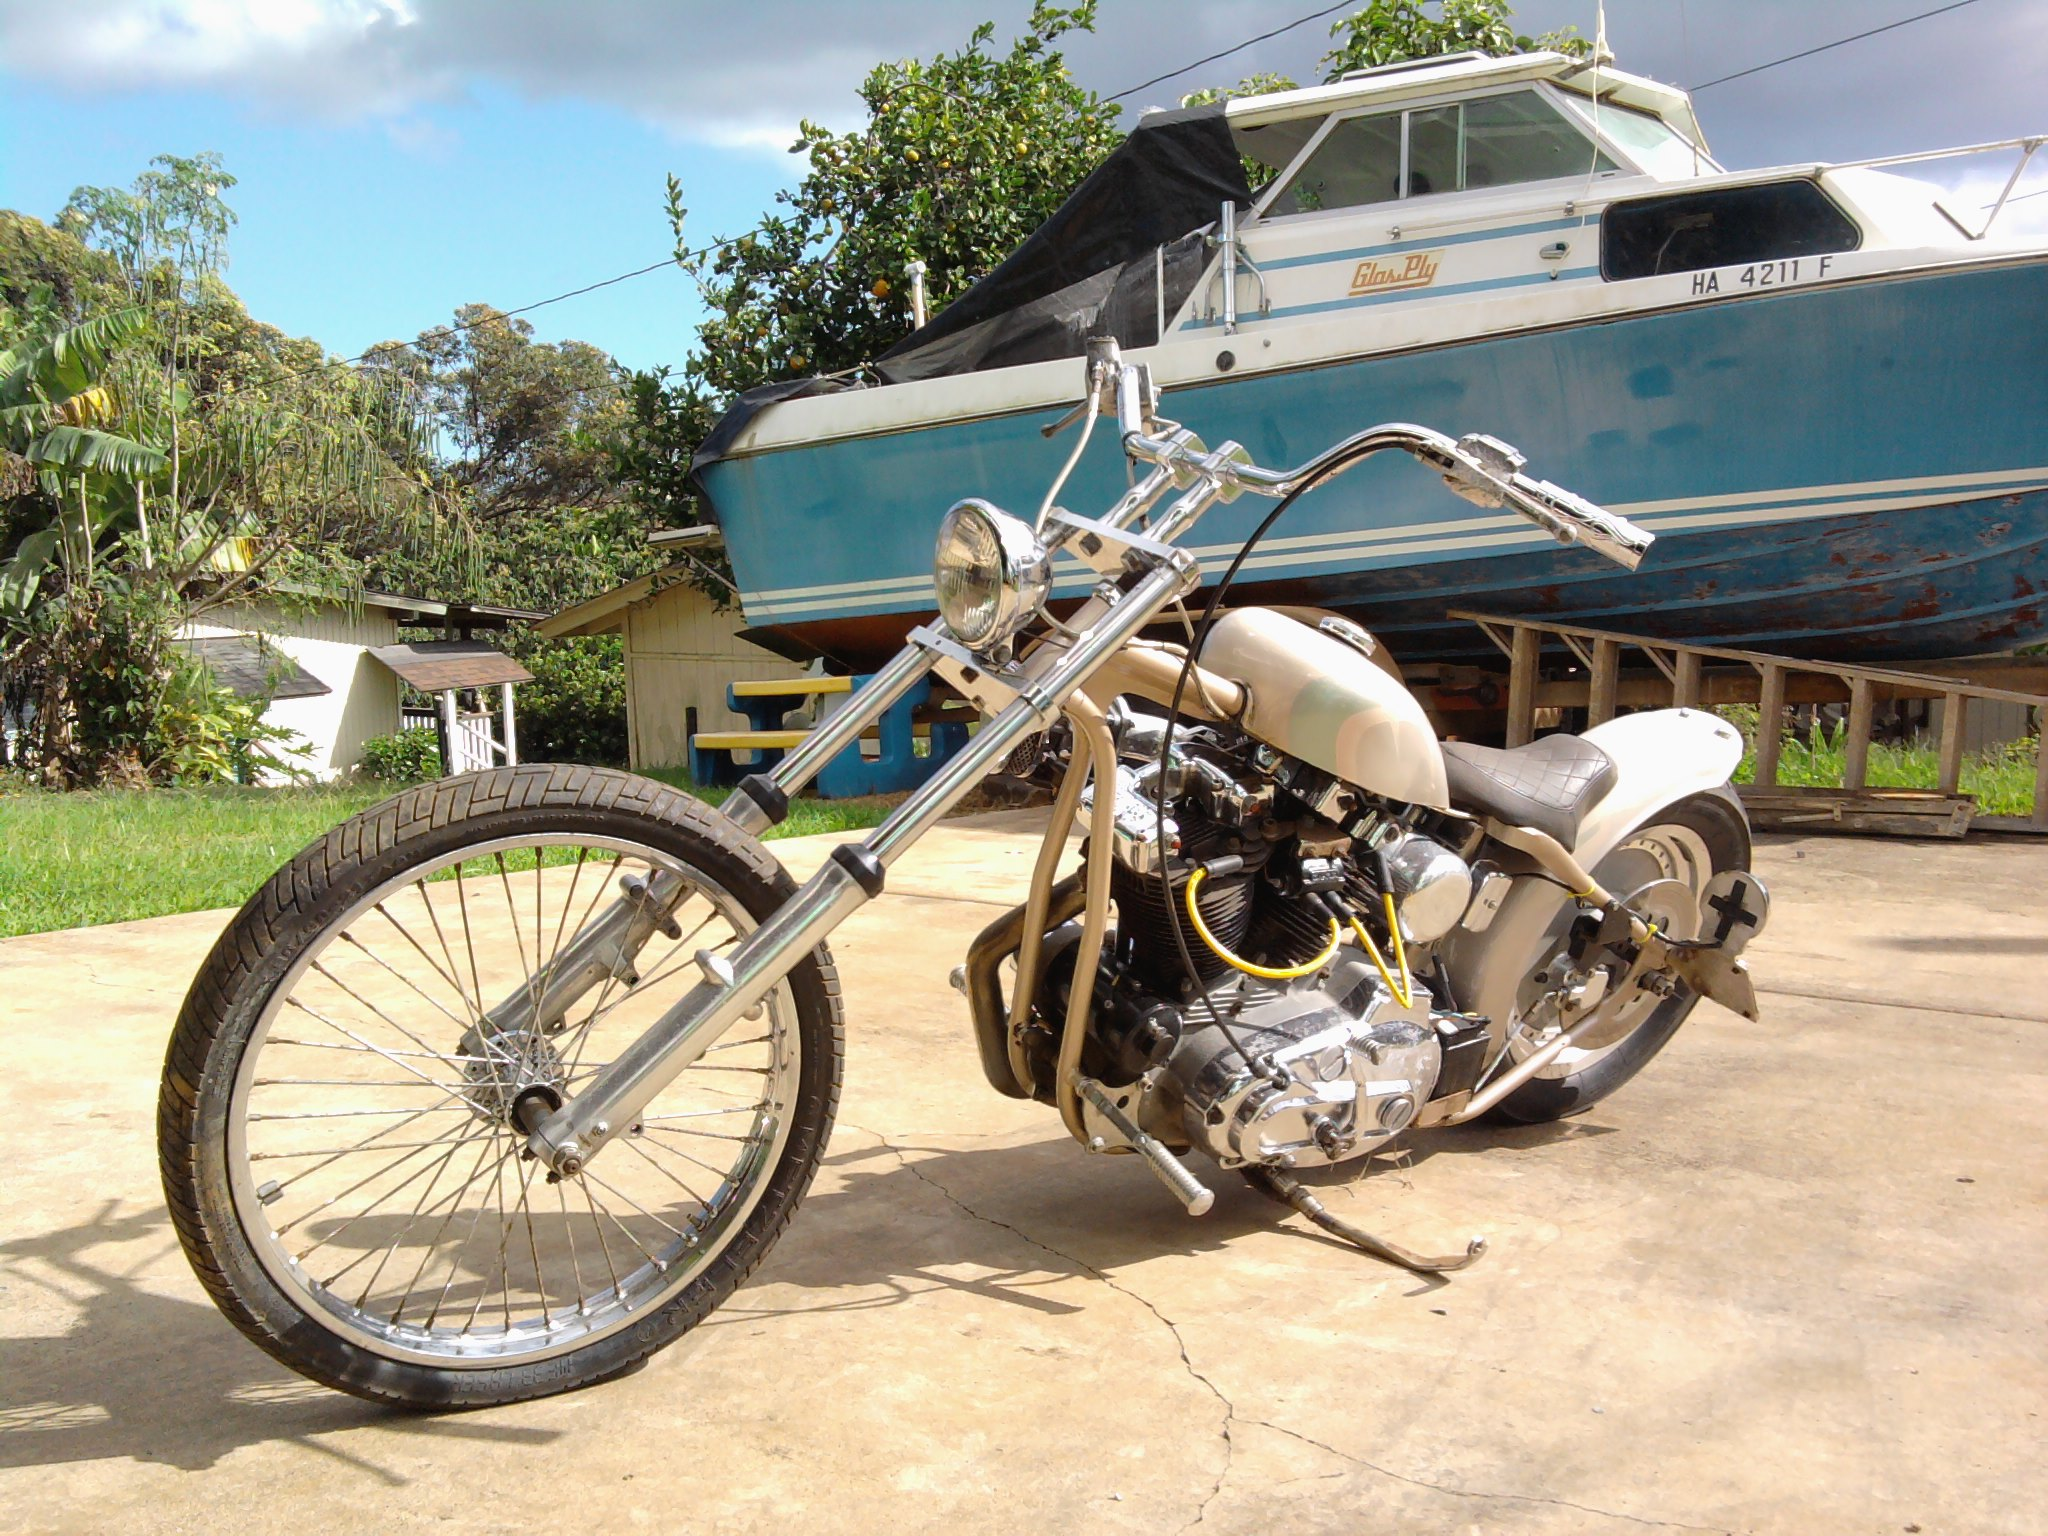 Got my Harley Chopper, Get on two wheels and Ride!